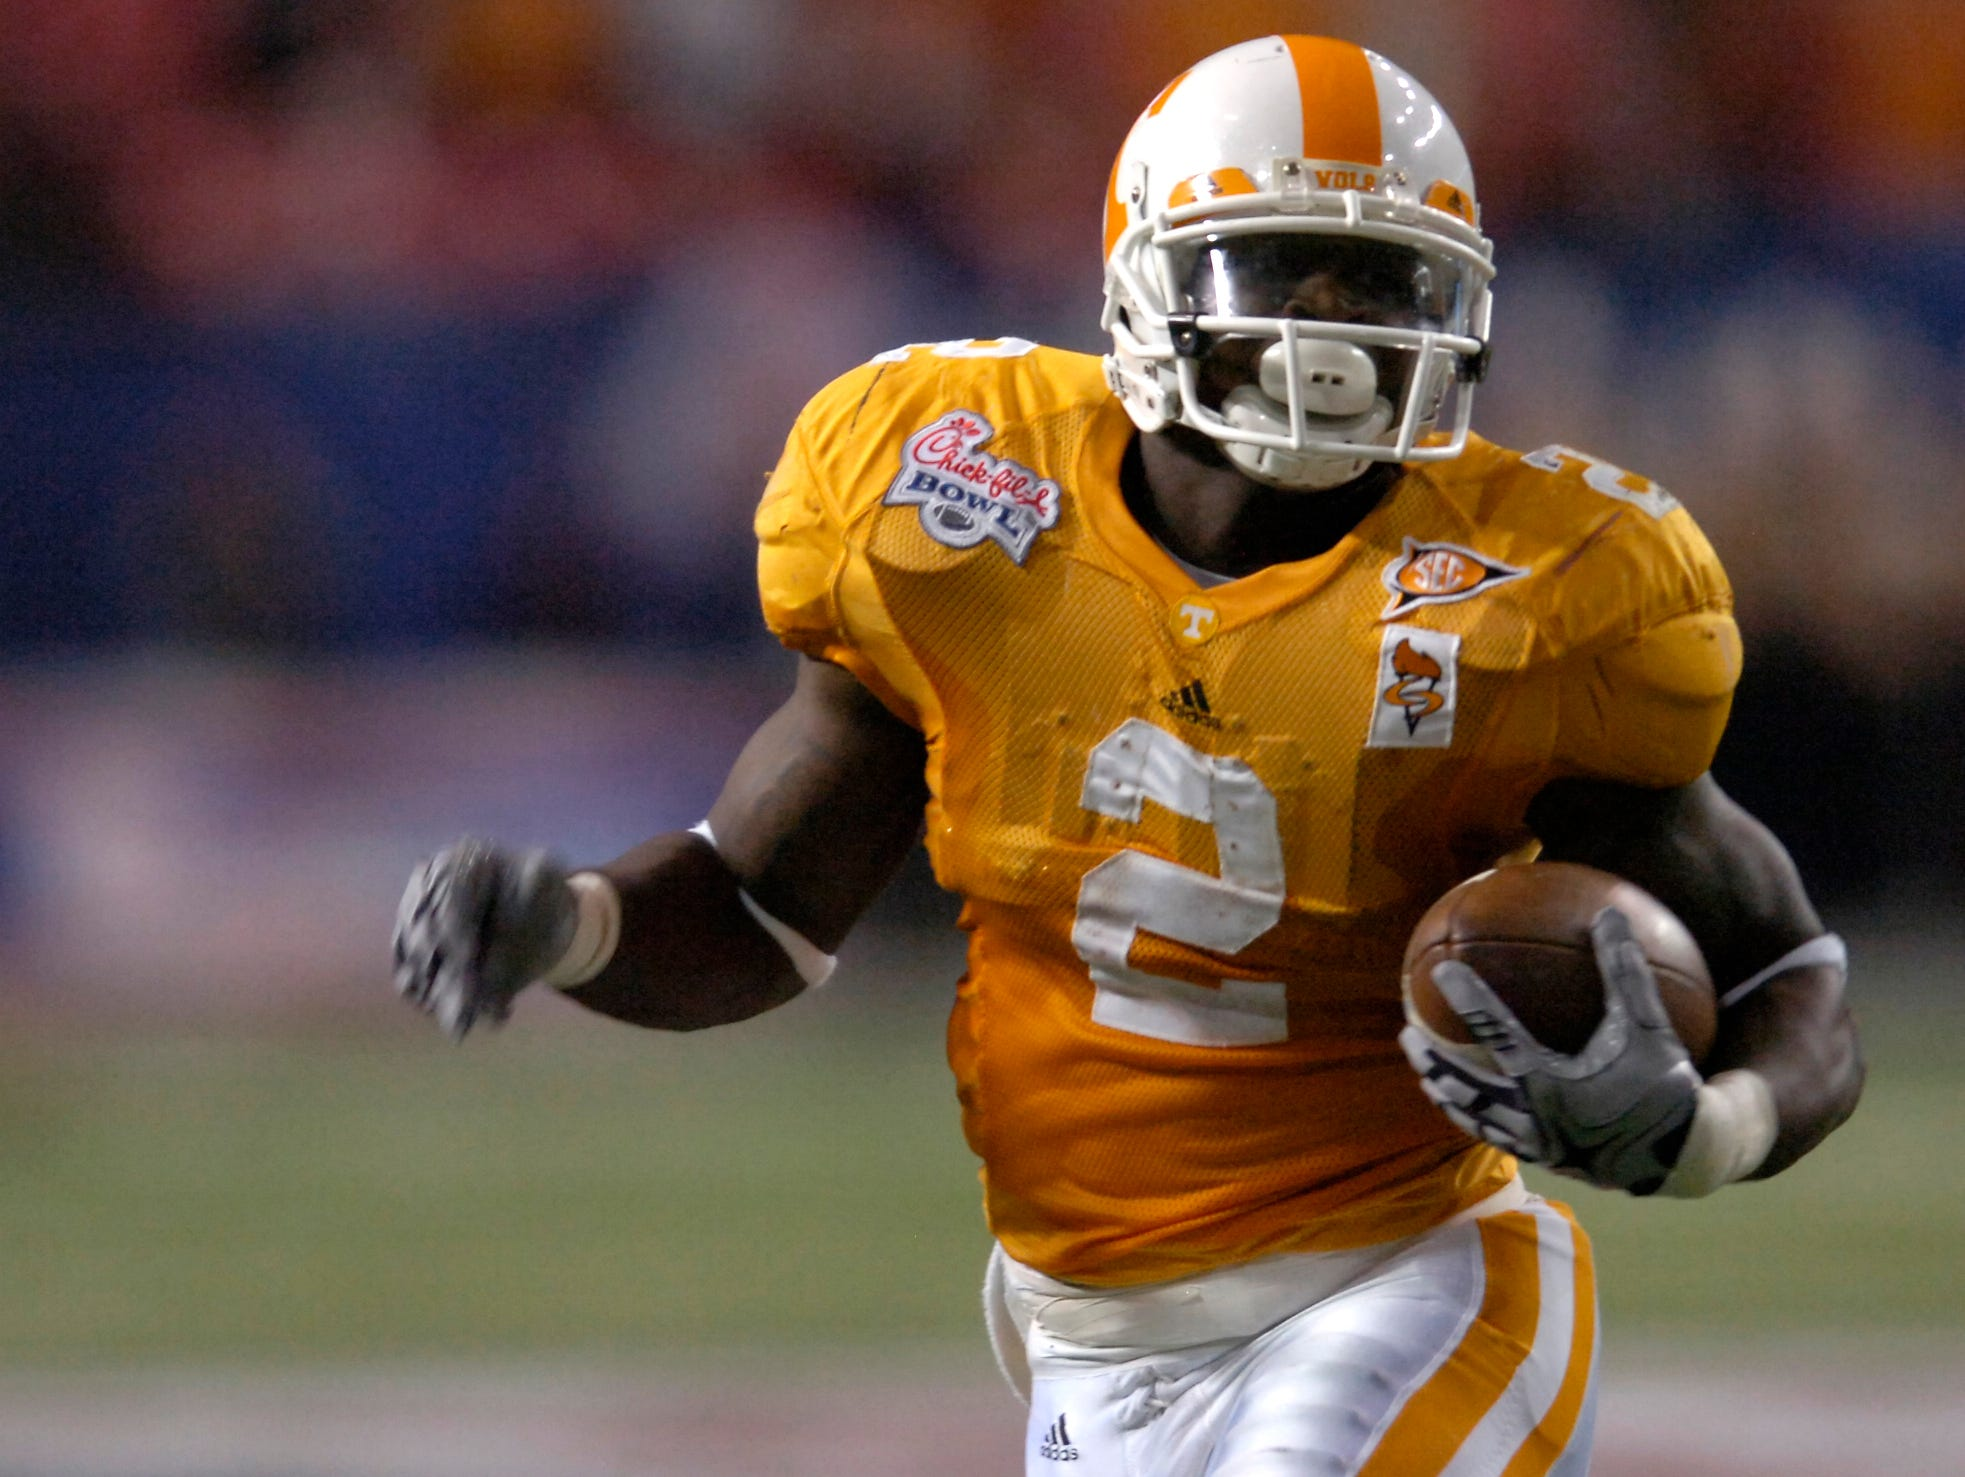 Running back Montario Hardesty carries the ball against Virginia Tech during the Chick-Fil-A Bowl on Dec. 31, 2009, in Atlanta.